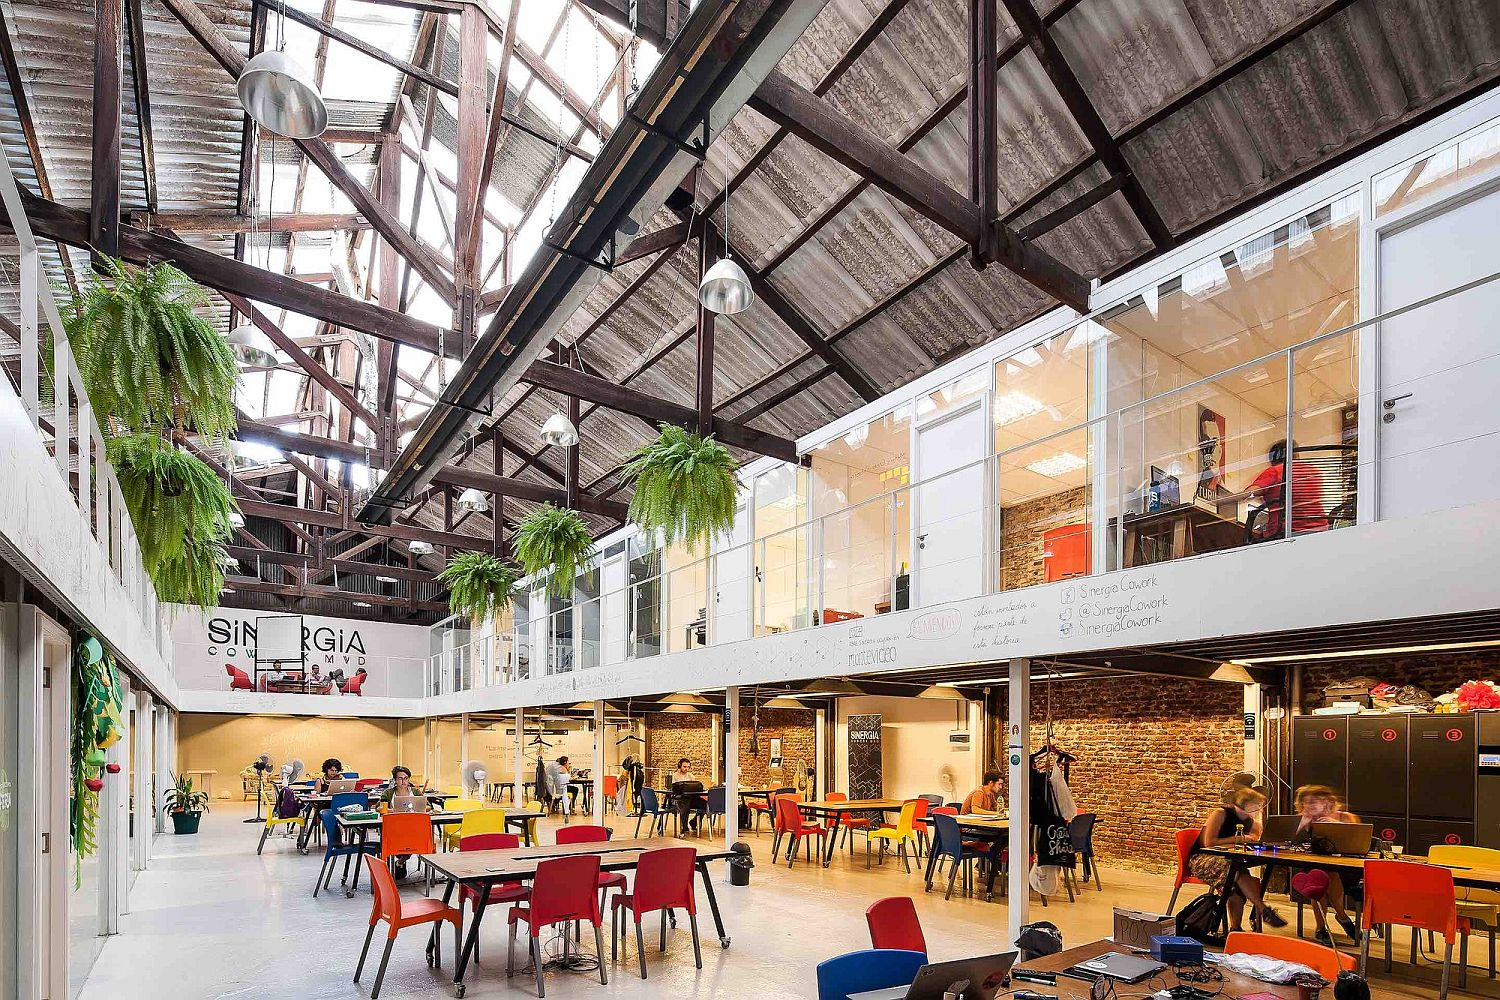 Sinergia Cowork Palermo Adaptive Reuse At Its Industrial Best